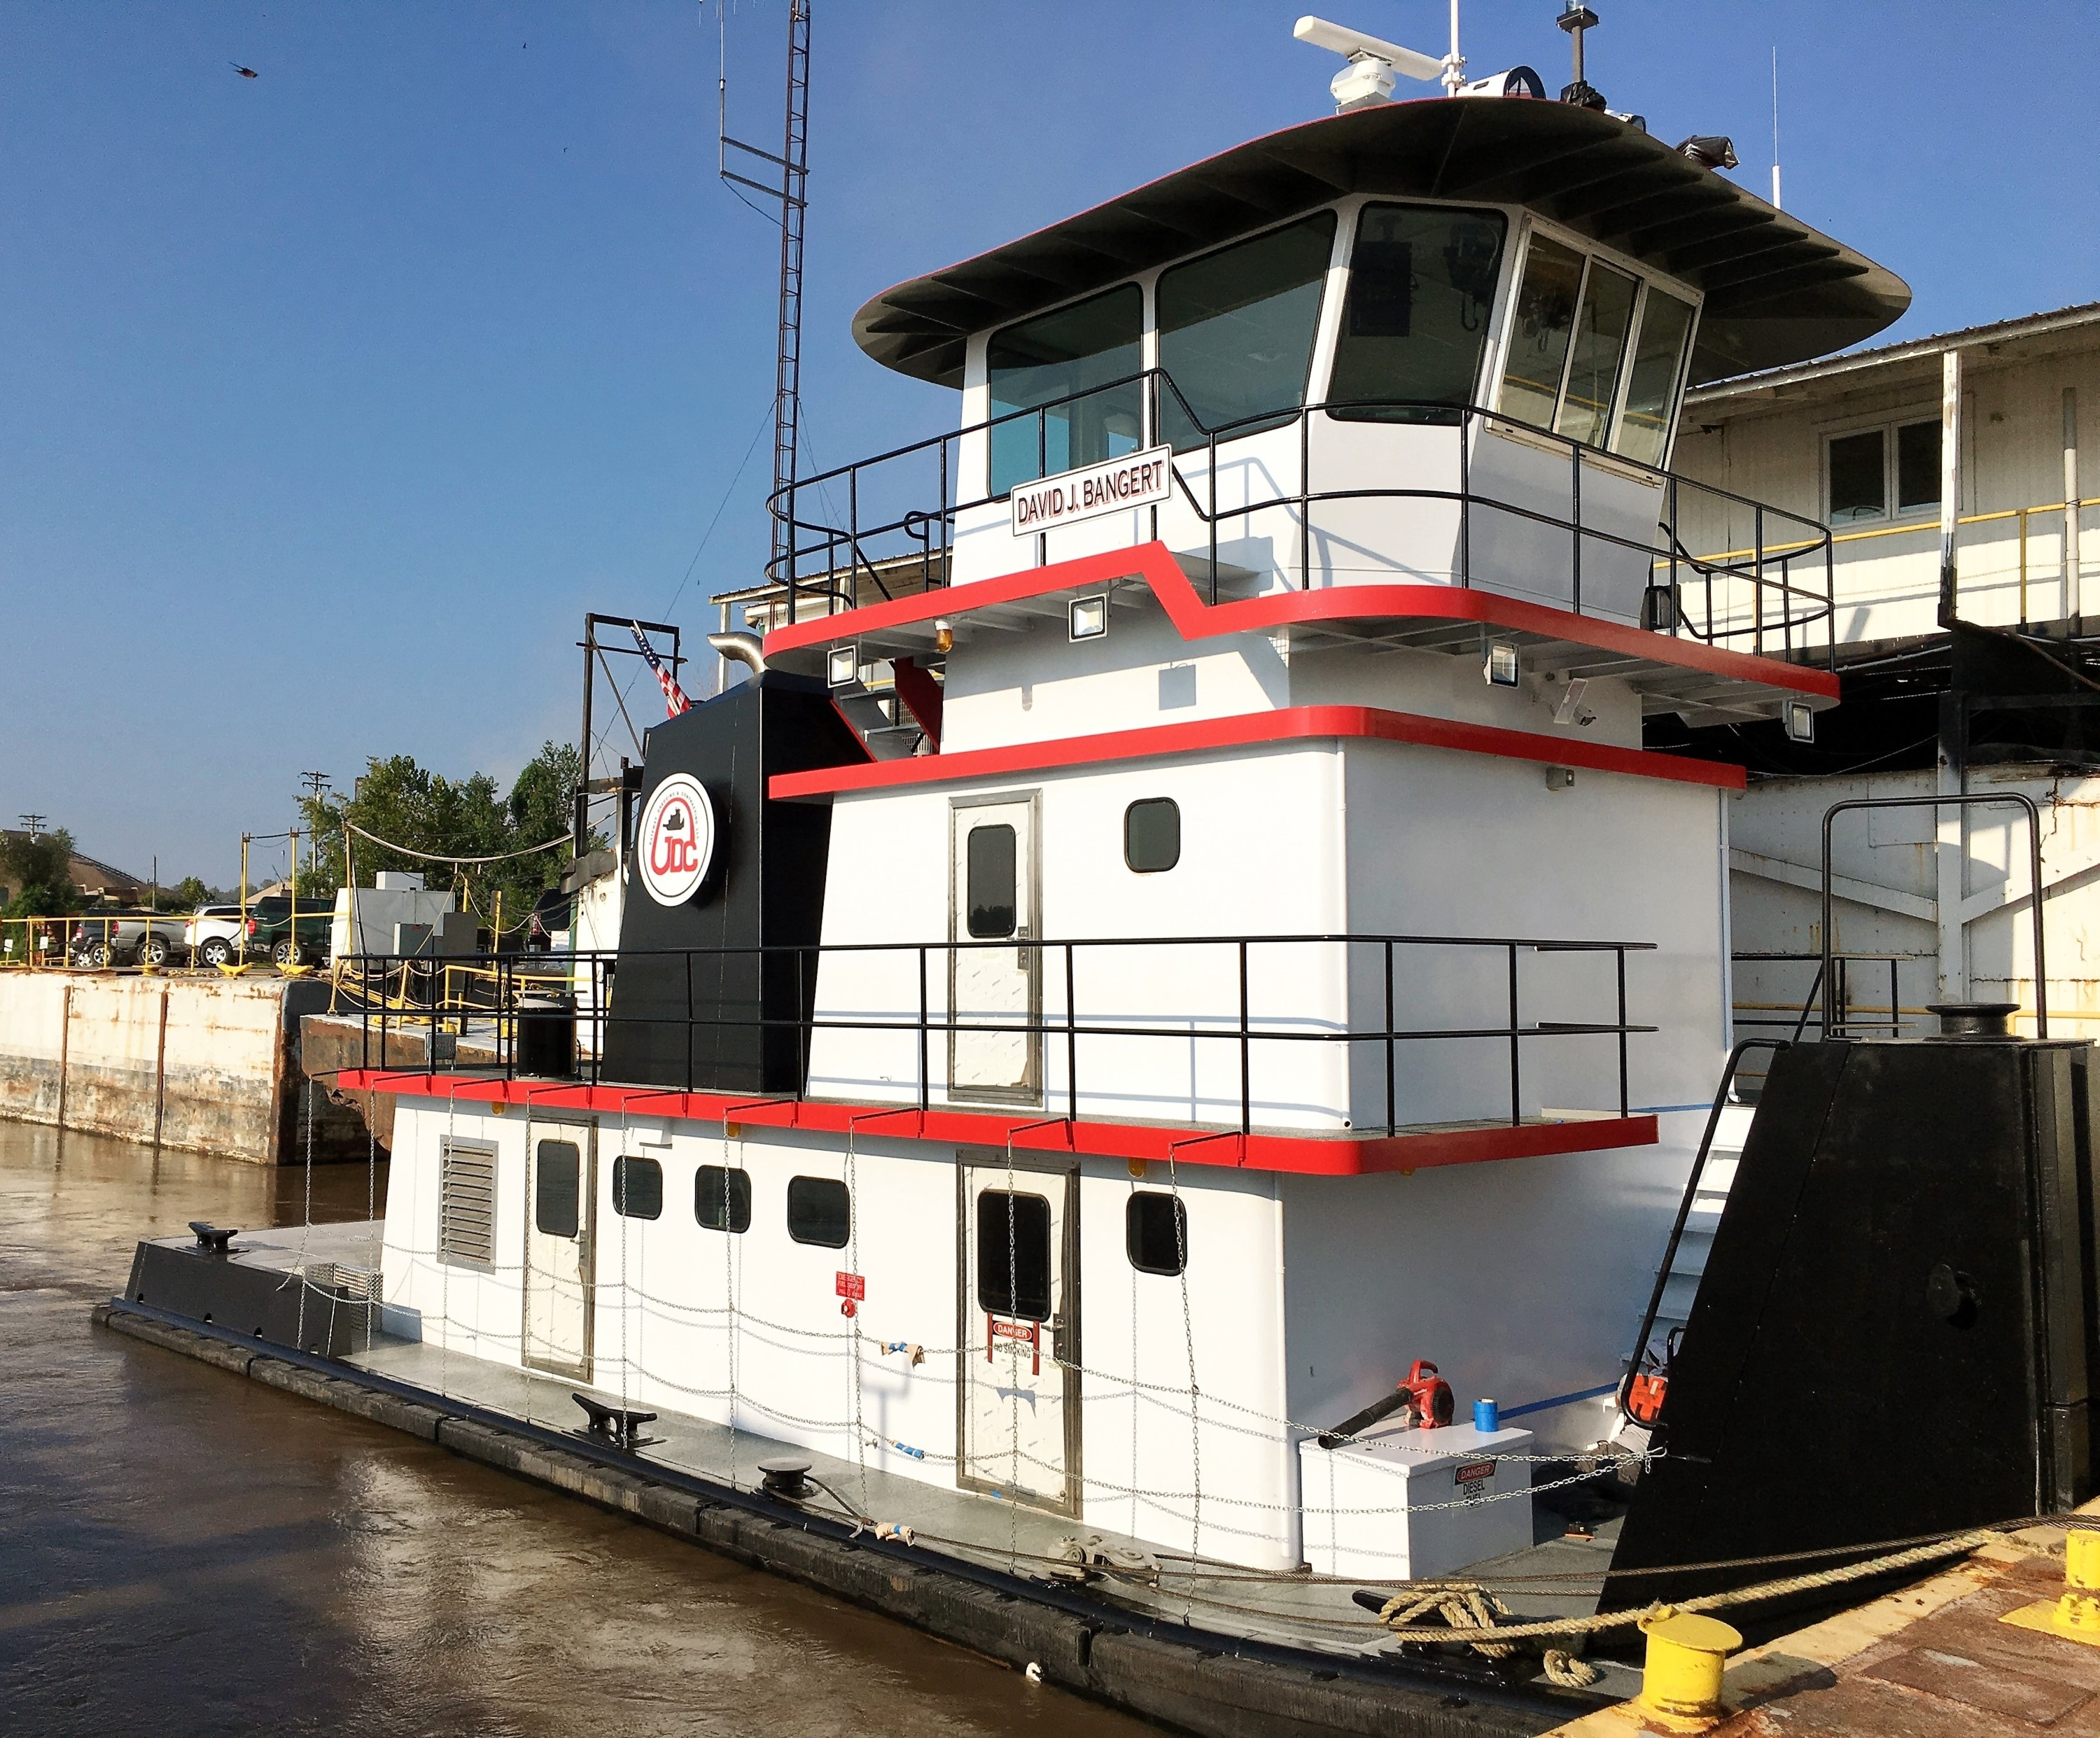 Commercial inland towboat